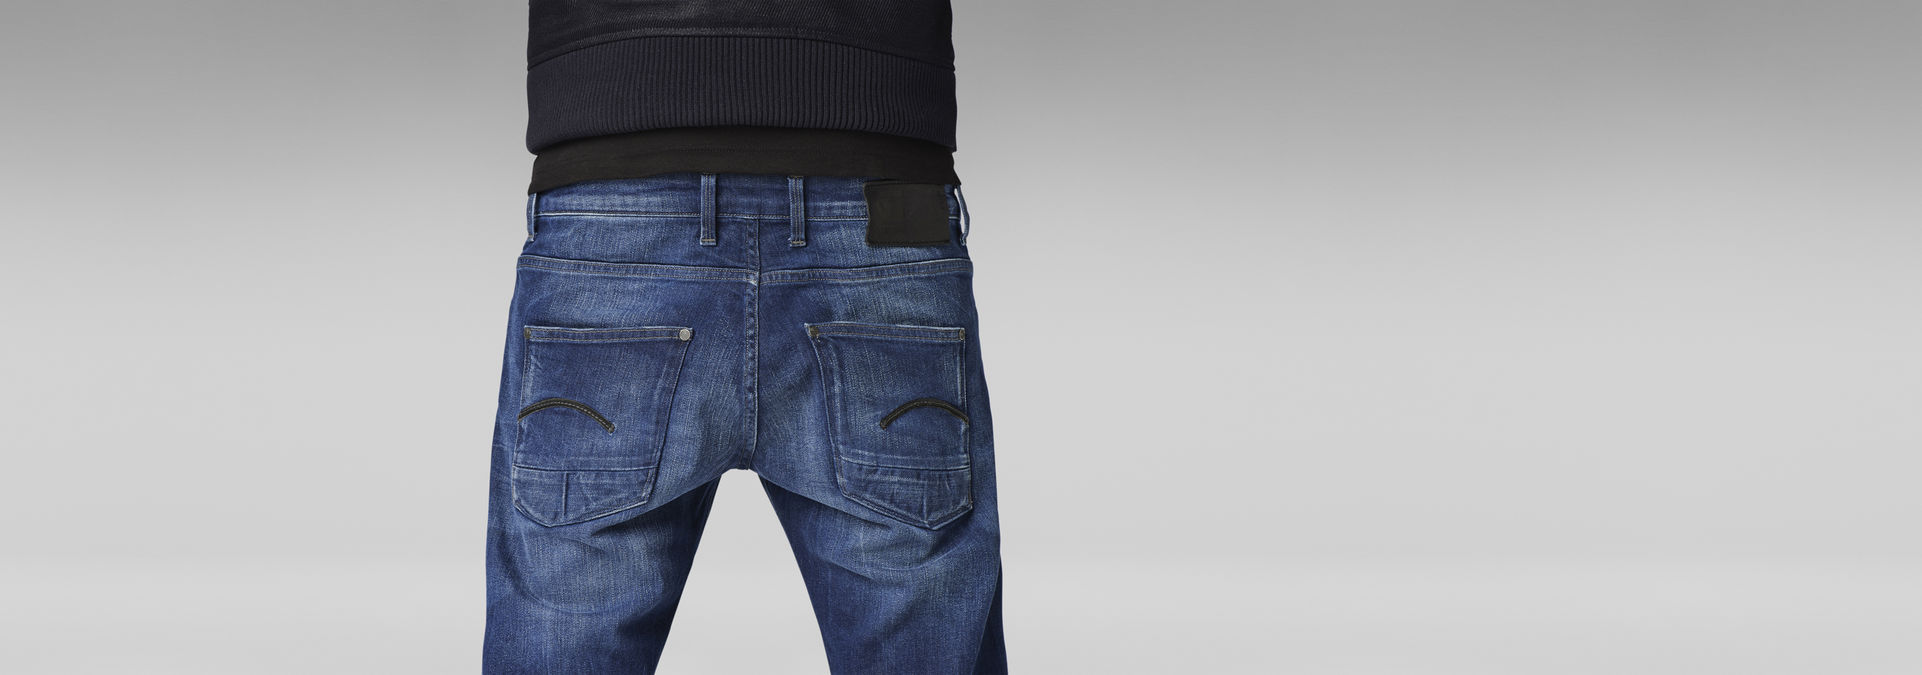 6542f85d3b5 Defend Straight Jeans | Medium Aged | Men | G-Star RAW®